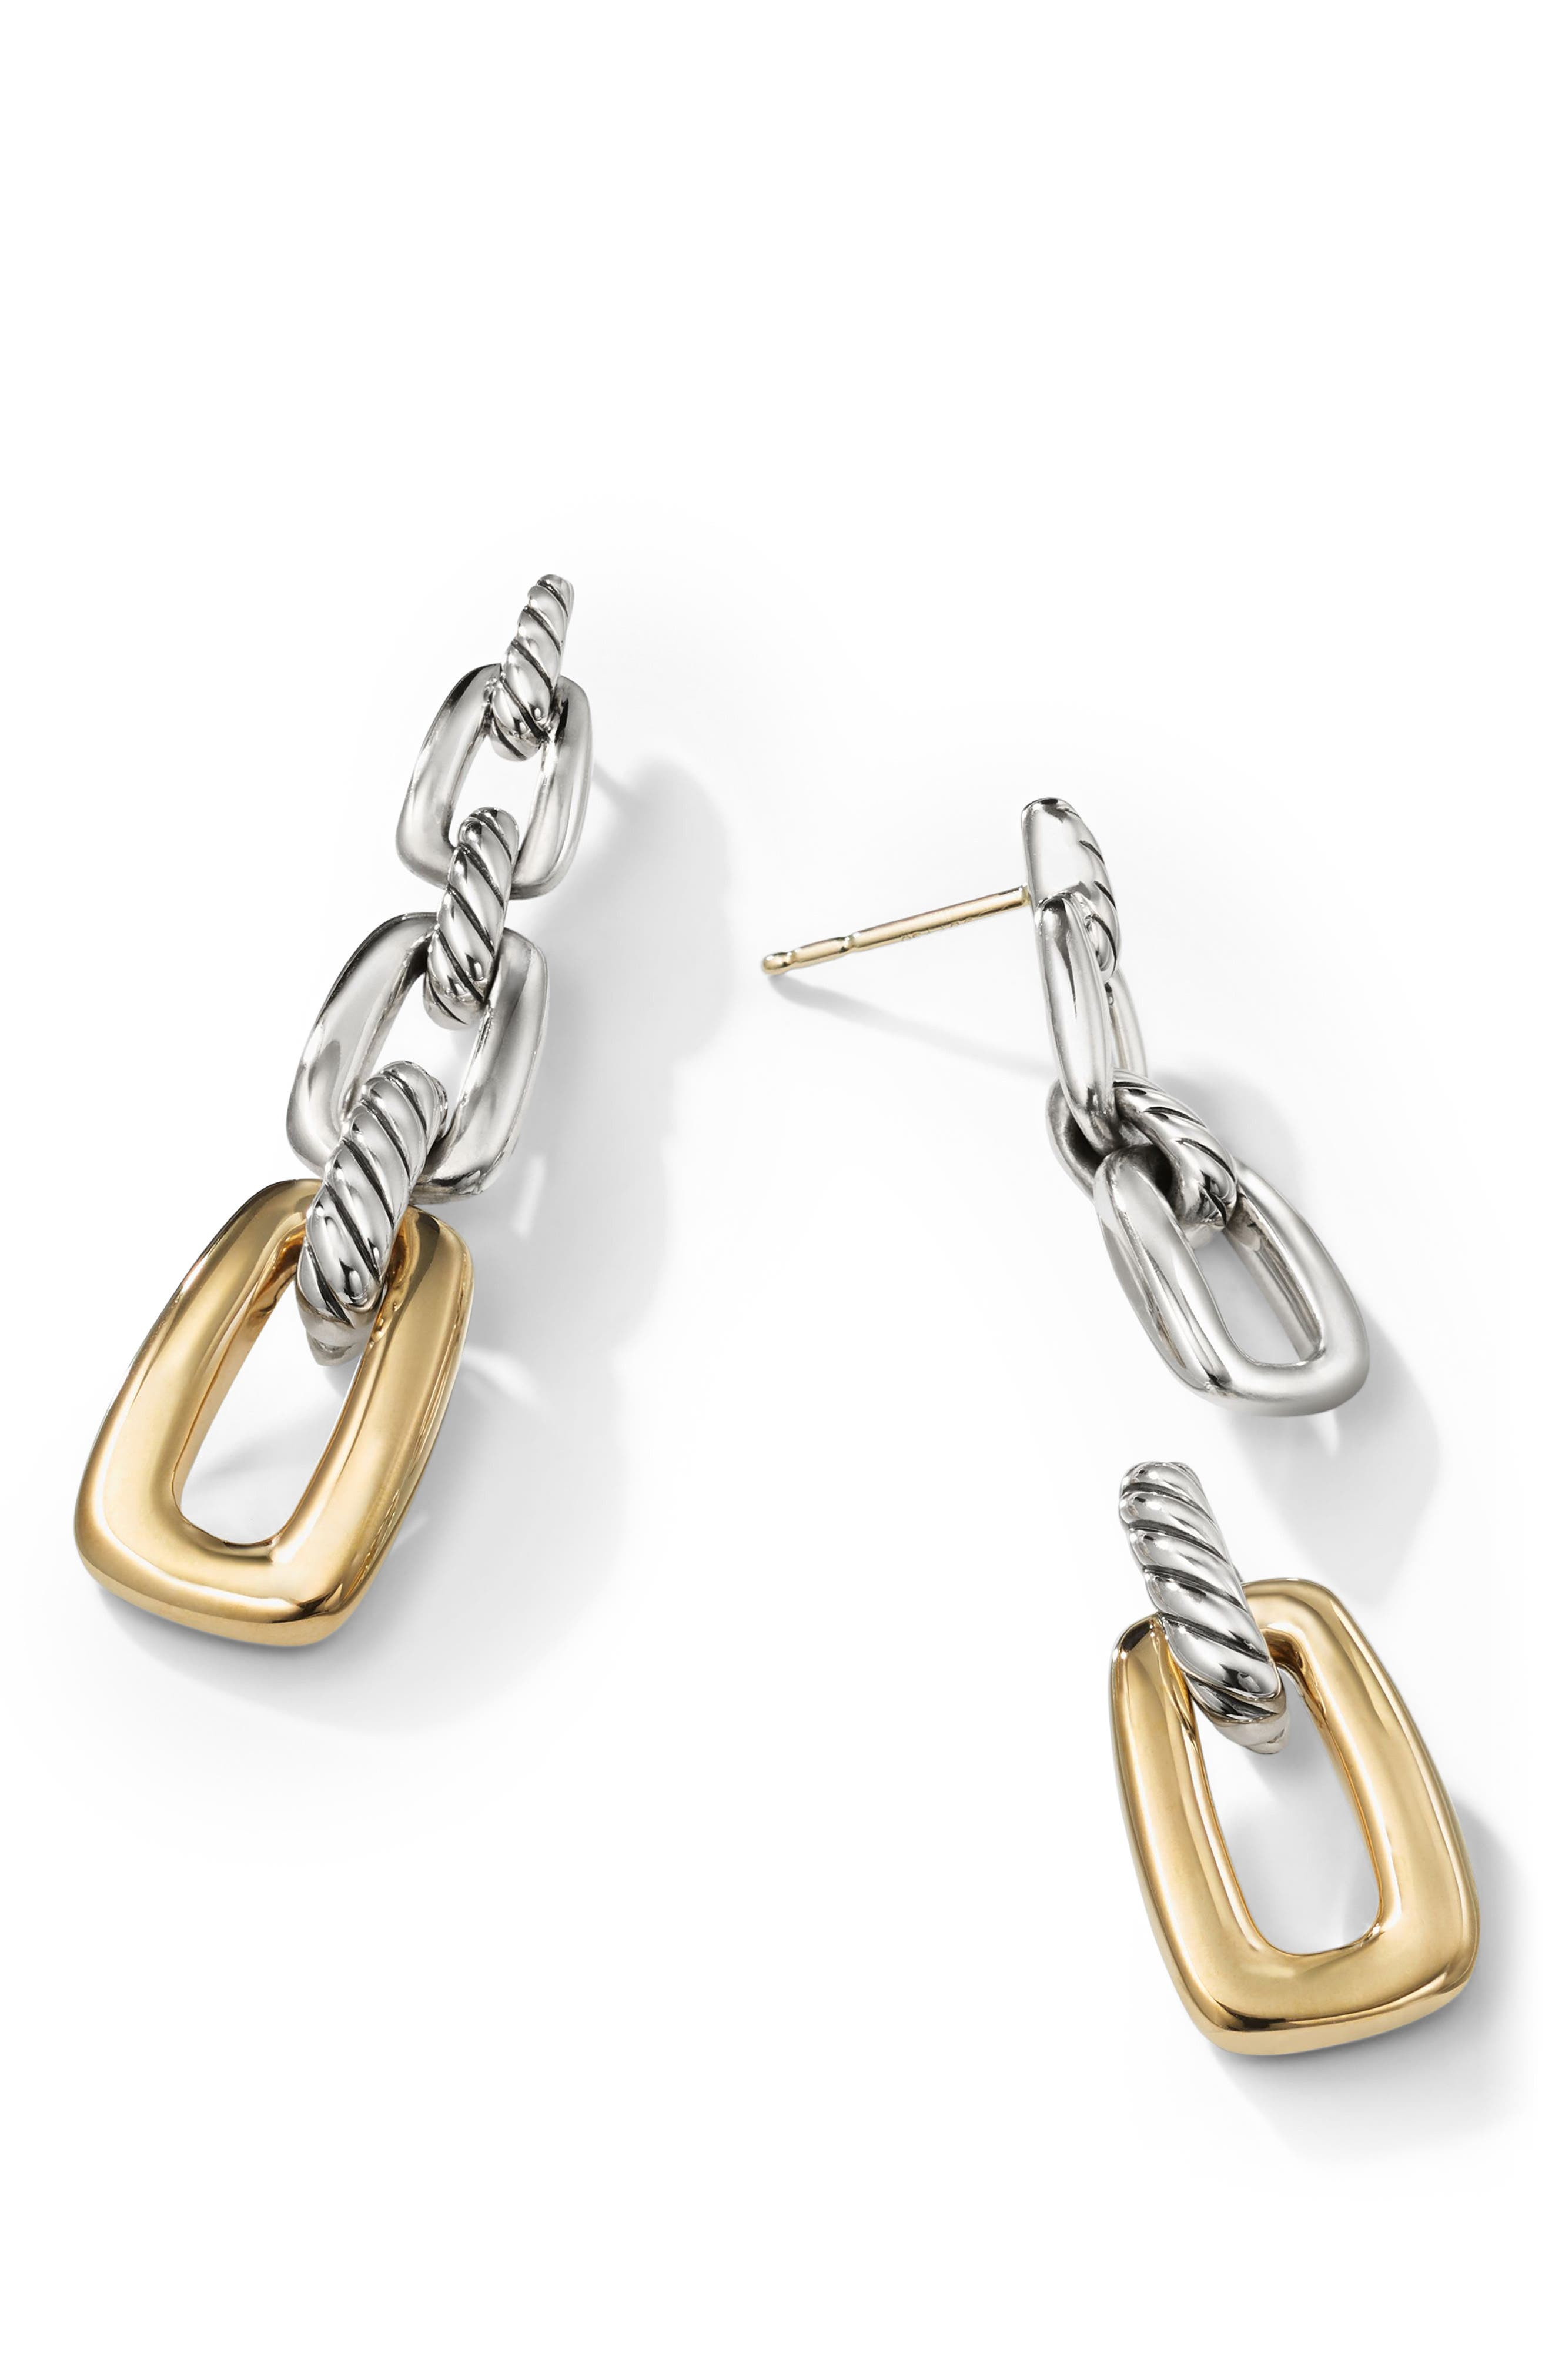 Wellesley Link Drop Earrings with 18k Gold,                             Alternate thumbnail 2, color,                             18K YELLOW GOLD/ SILVER